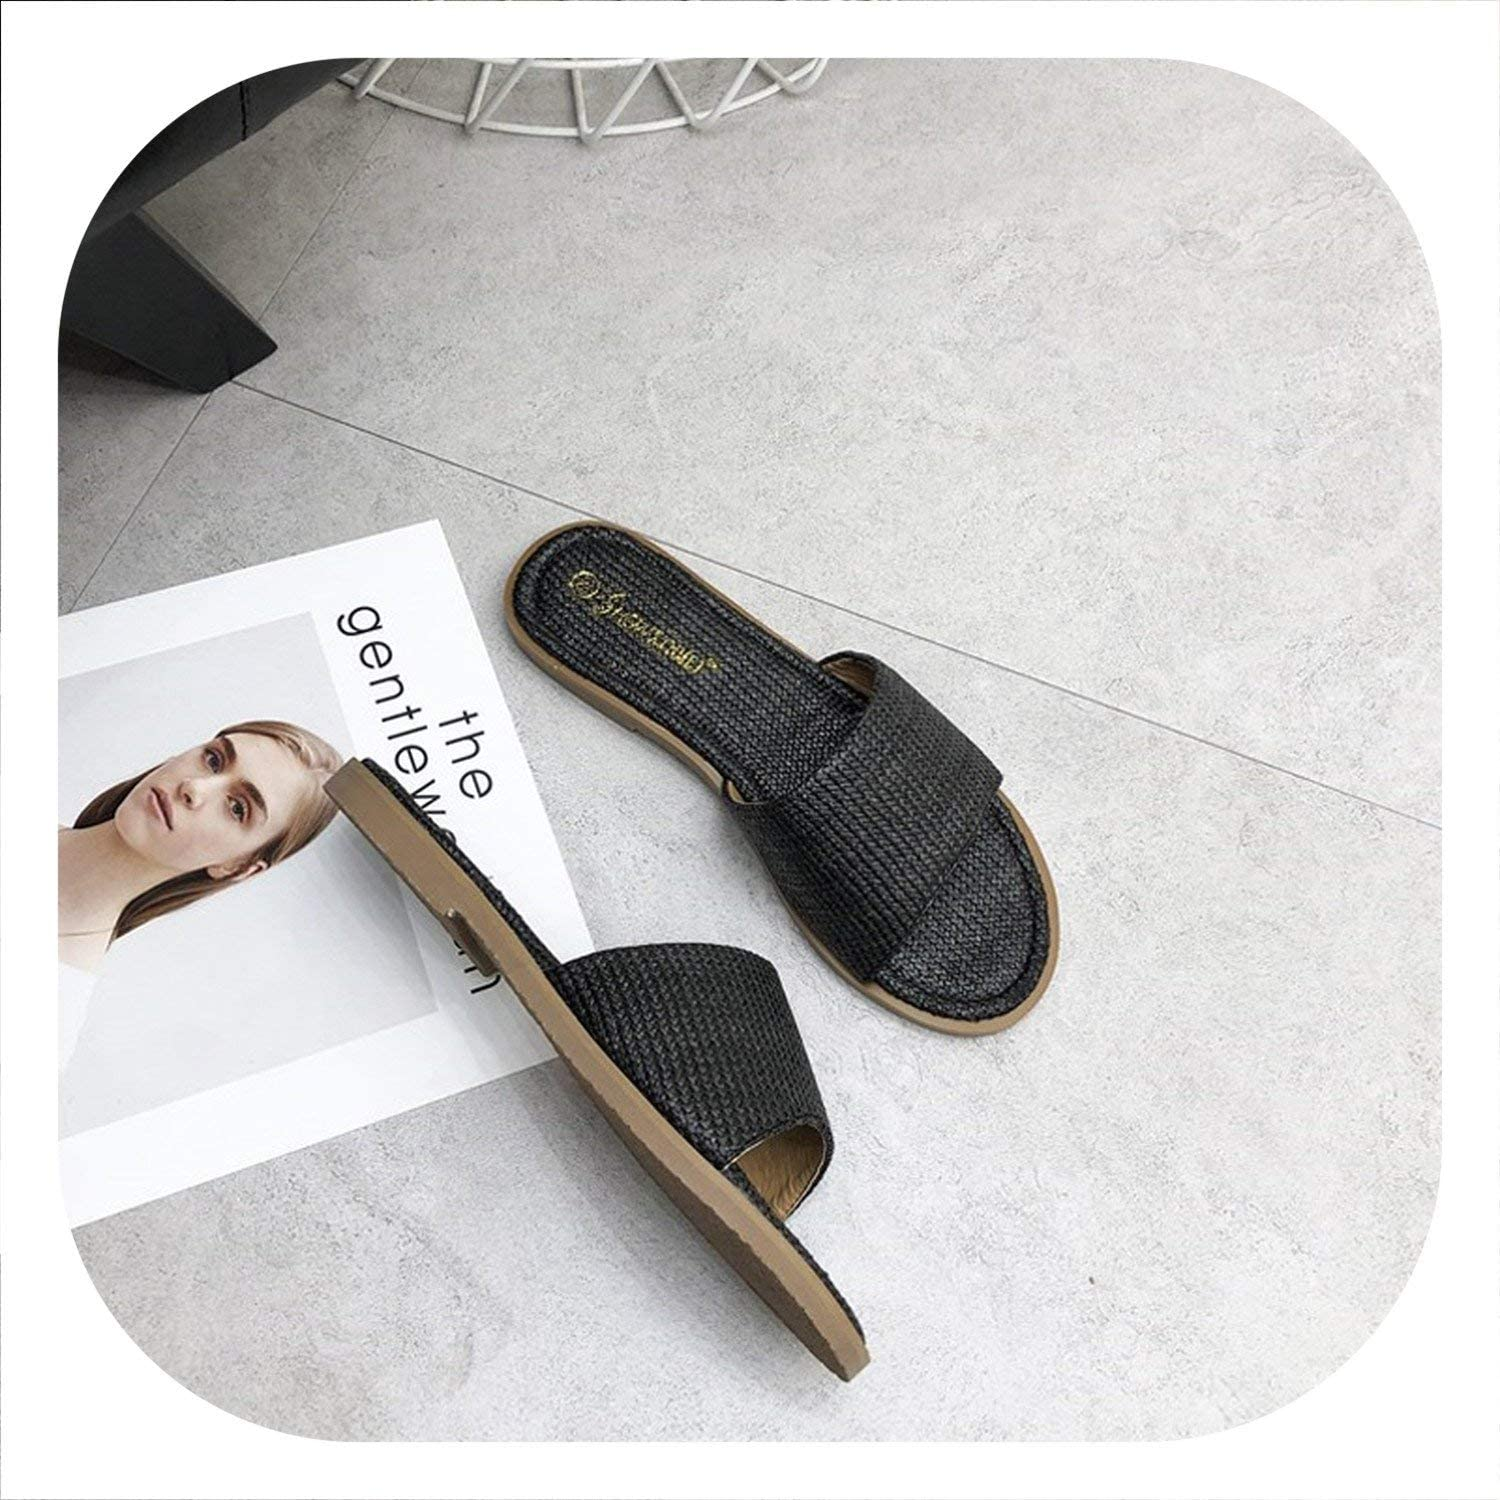 I Need-You Fashion Slippers Summer shoes Female Slides Cane Weaving Mules shoes Women Beach Slippers Casual Slides Ladies Flats shoes